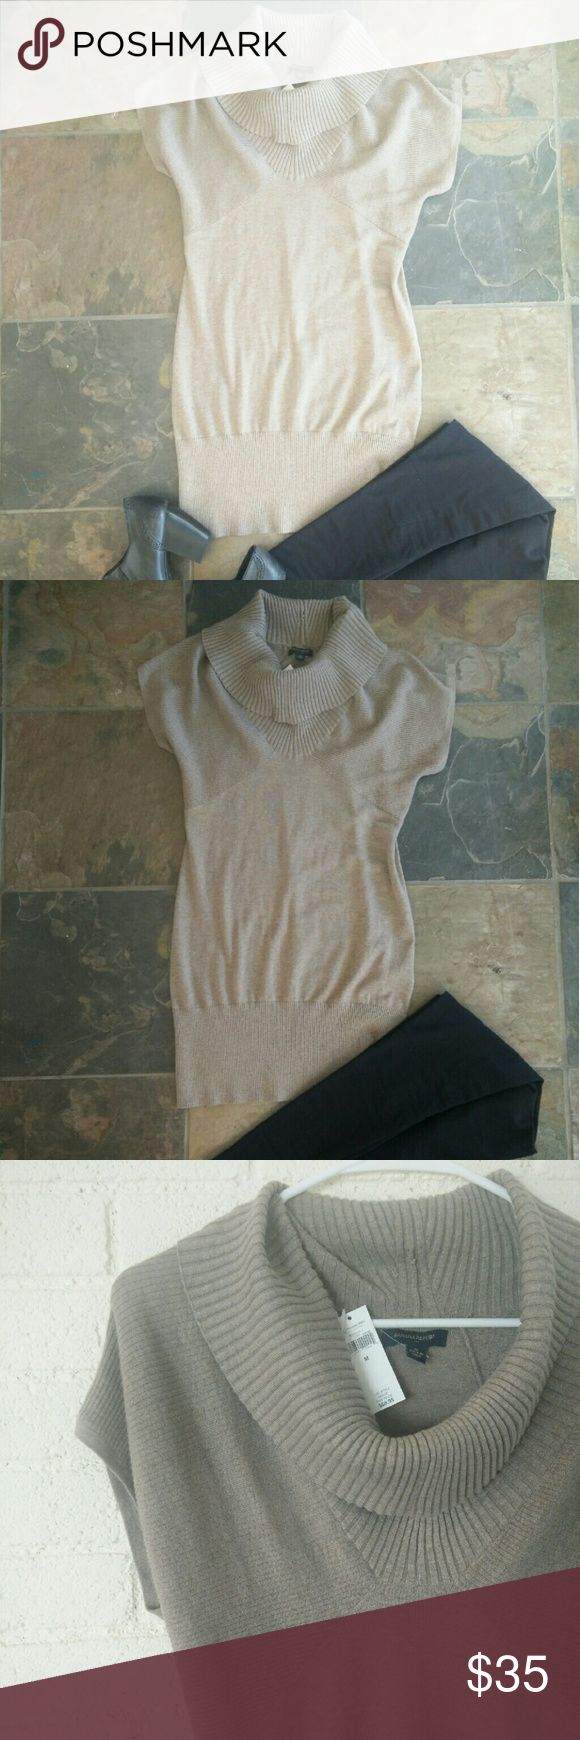 Banana Republic short sleeve sweat dress NWT this light brown scoop neck sweater dress comes to just above knee length. Layer with leggings and boots for a warm cozy fall/winter look. Soft material, flattering fit. Banana Republic Dresses Midi